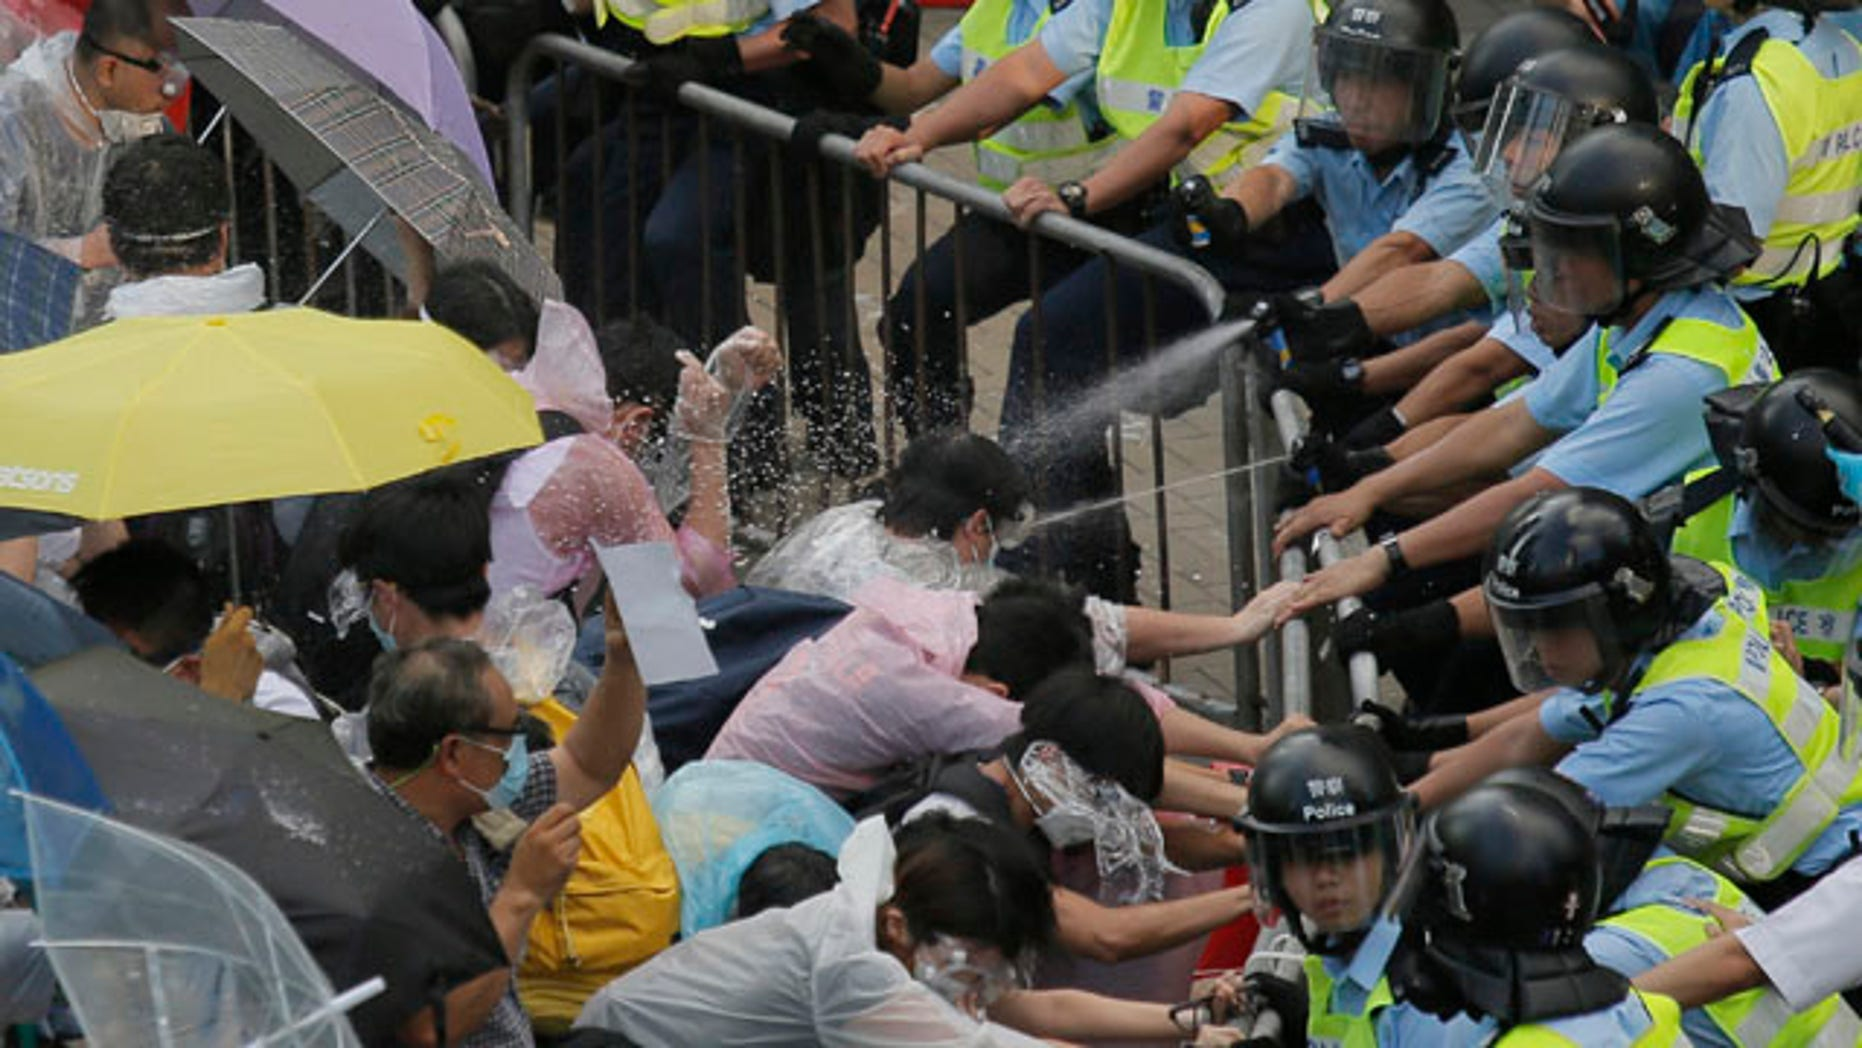 September 28, 2014: Riot police use pepper spray against protesters after thousands of people block a main road to the financial central district outside the government headquarters in Hong Kong. (AP Photo/Vincent Yu)